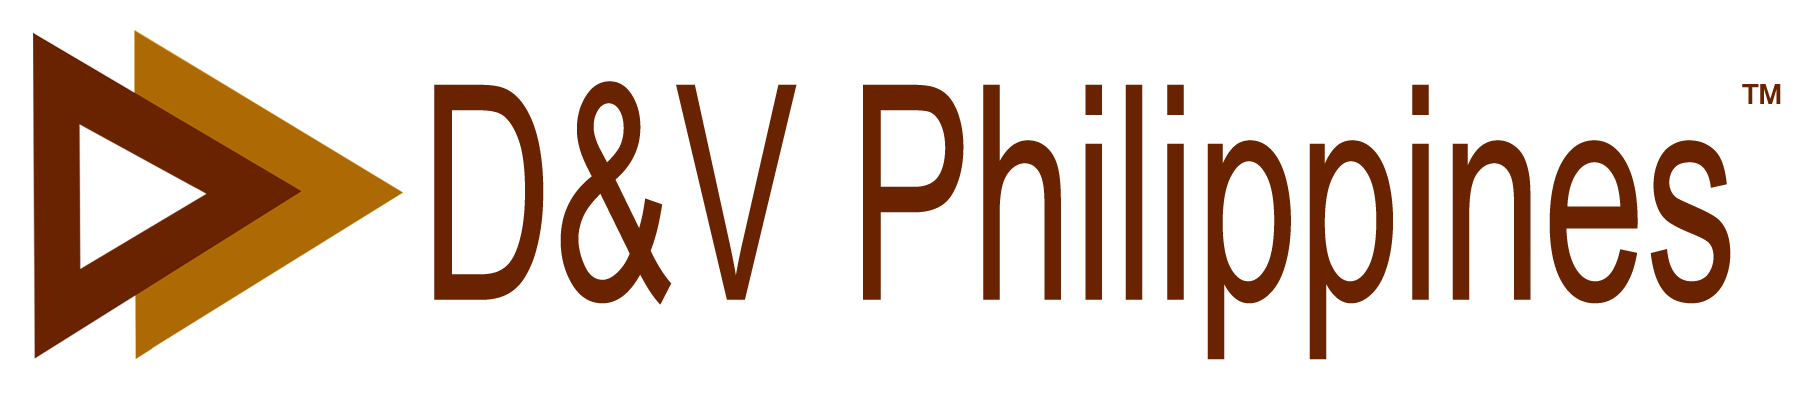 Primary_Logo_with_Tagline.png